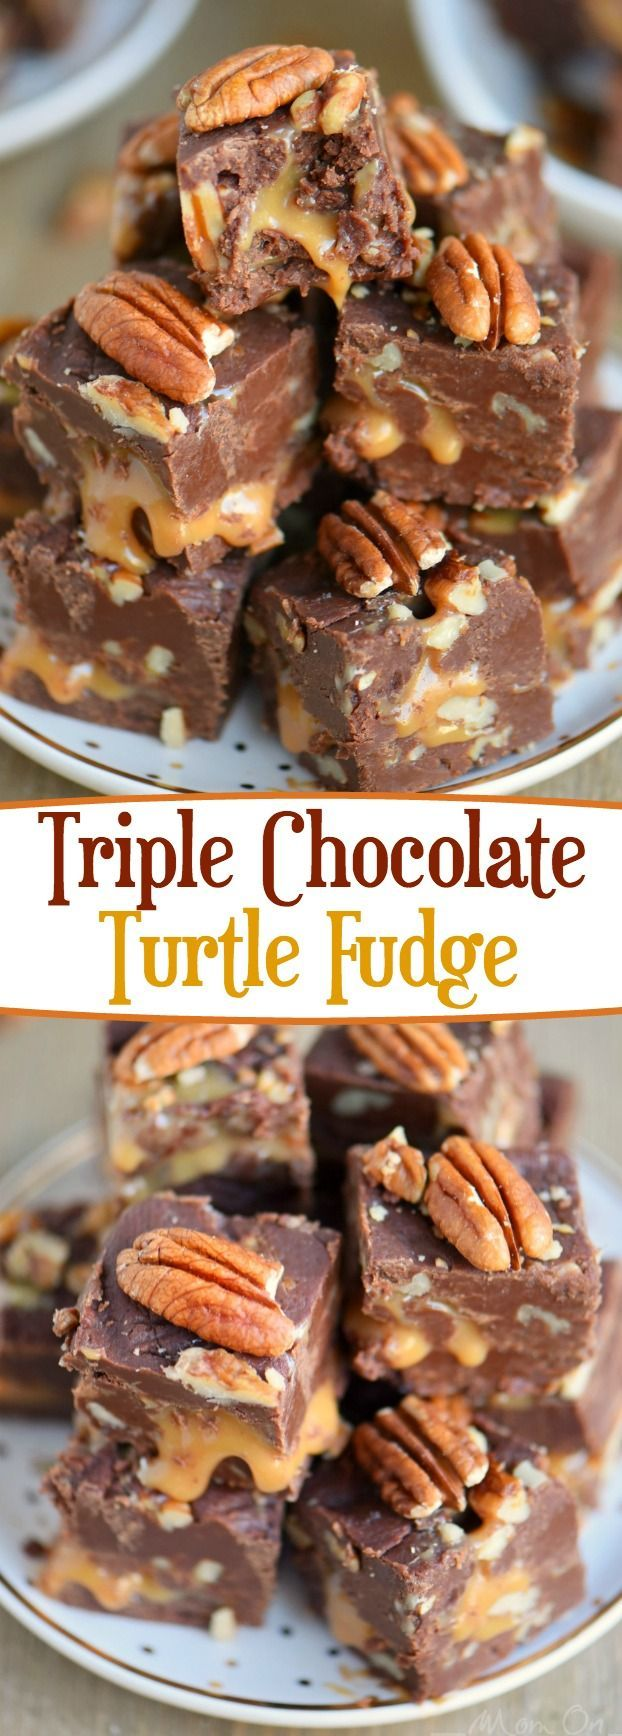 This decadent Triple Chocolate Turtle Fudge features three different types of chocolate and an ooey, gooey caramel center that is hard to resist! Great for gift giving and the holidays! // Mom On Timeout